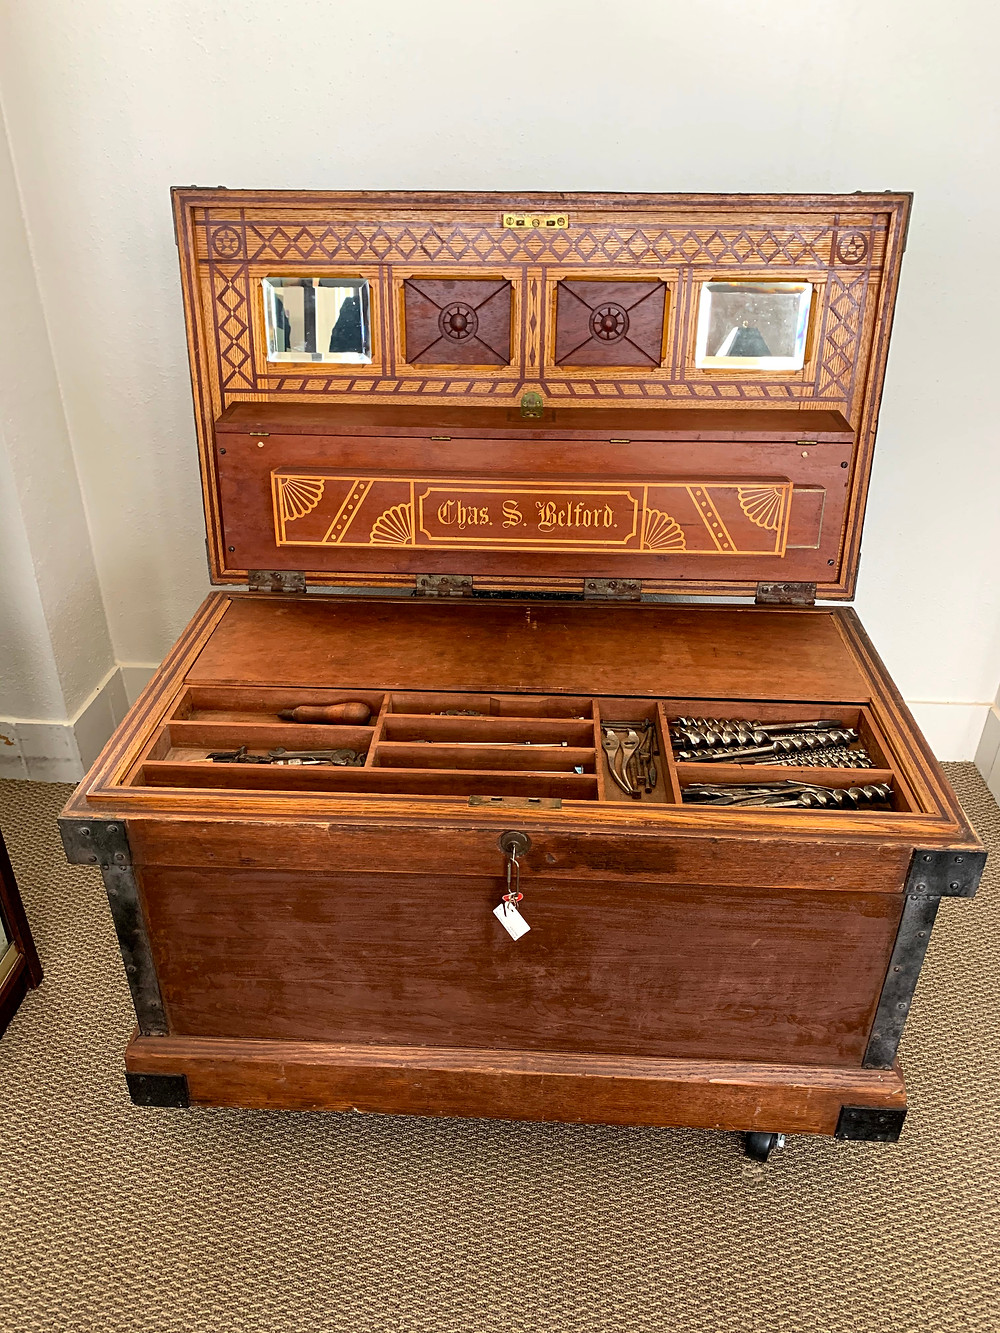 Belford's Tool Chest | Image Courtesy Southwestern University Special Collections and Archives